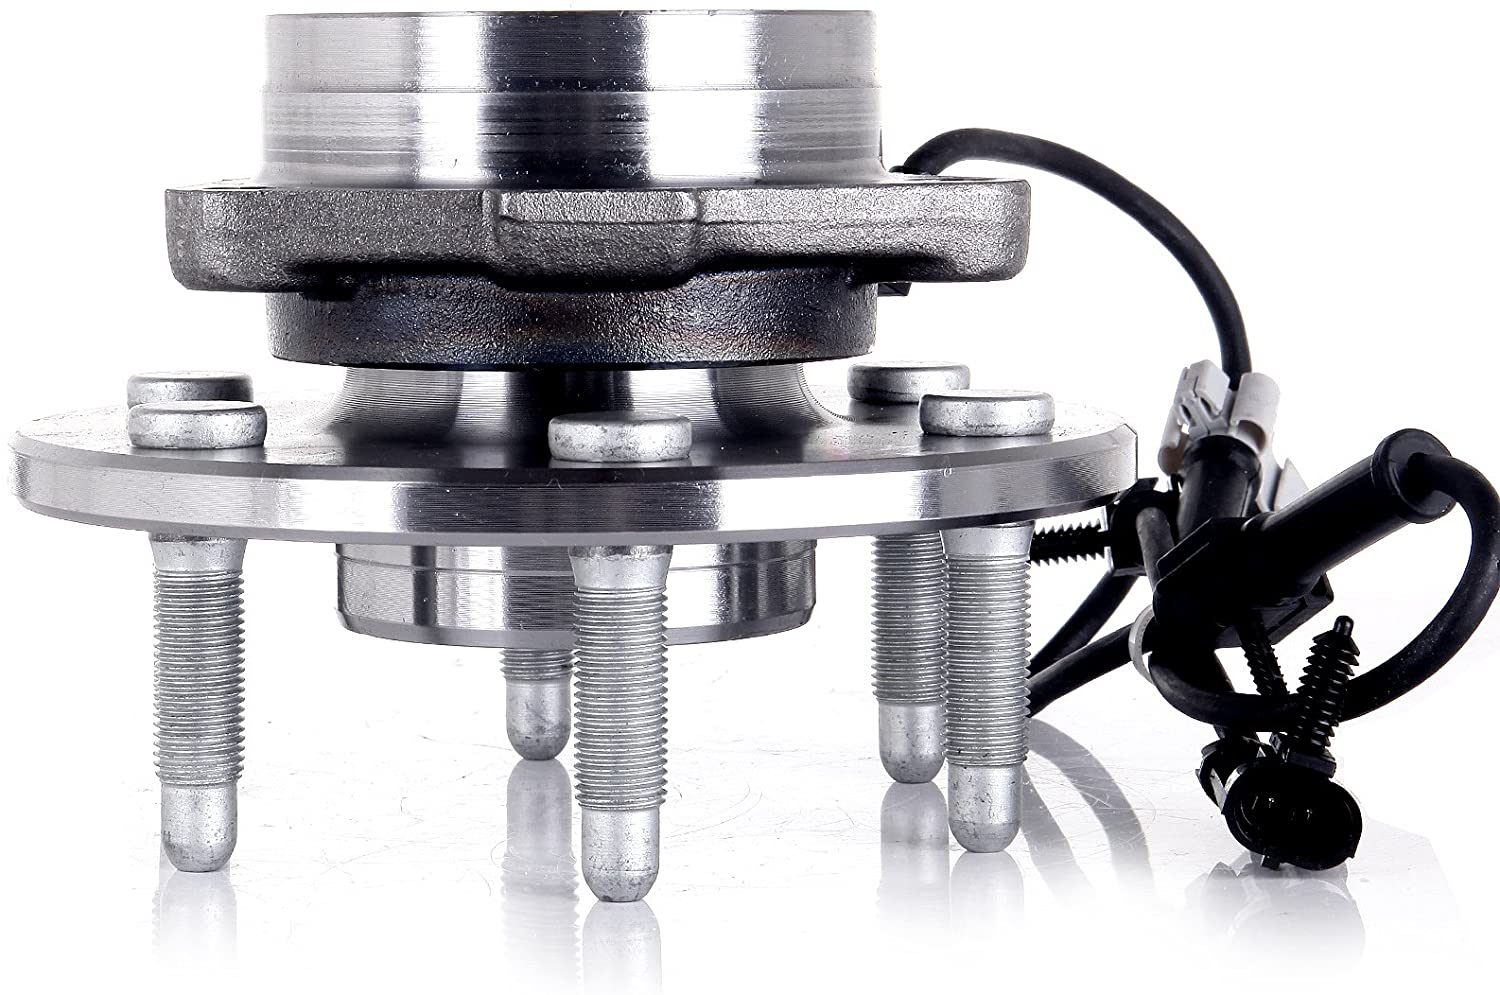 SCITOO Wheel Bearing and Hub Assembly for 4WD ONLY Cadillac Escalade GMC Yukon XL 1500 1999-2006 Chevrolet Silverado 1500 Compatible for 515036 Front 6 bolts W/ABS 1 pack